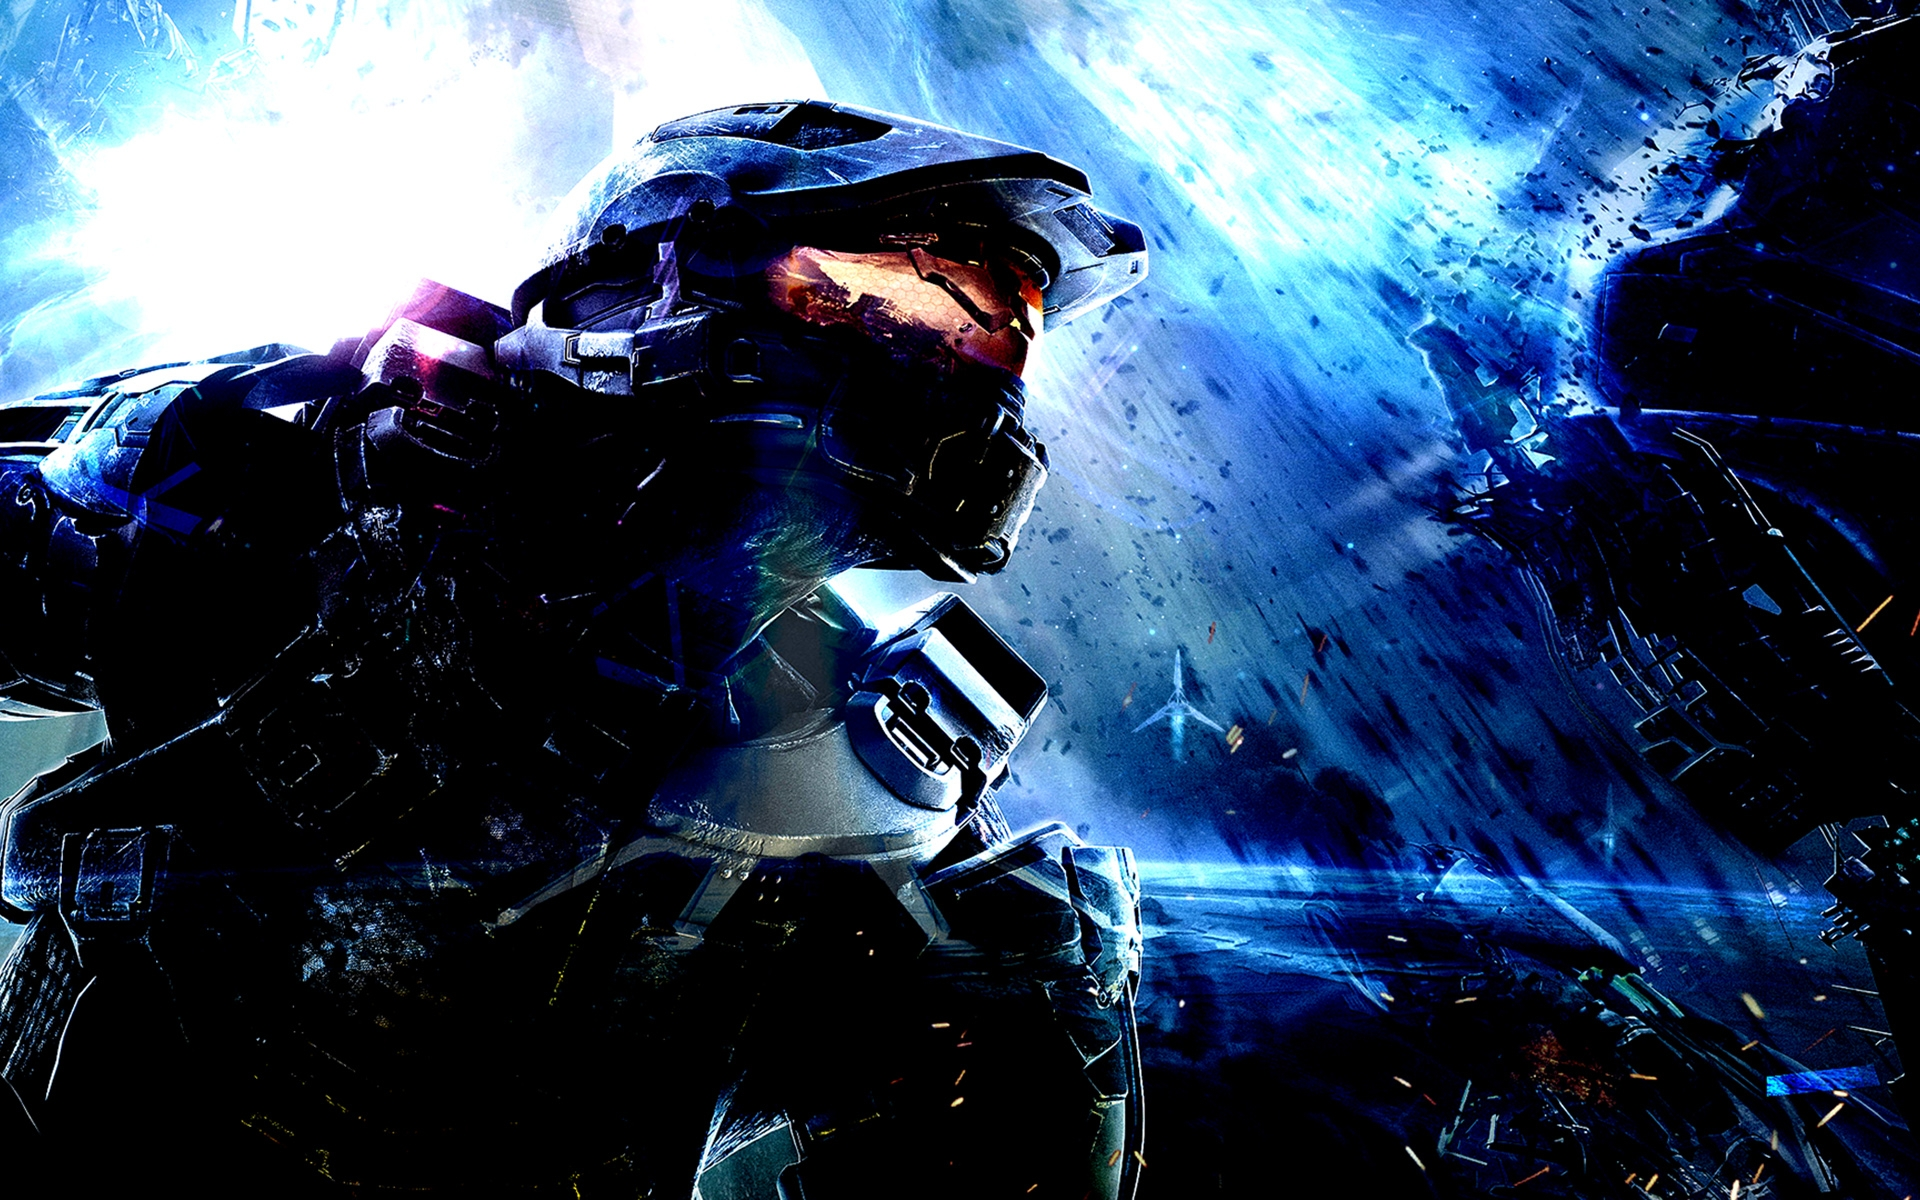 halo pictures A3